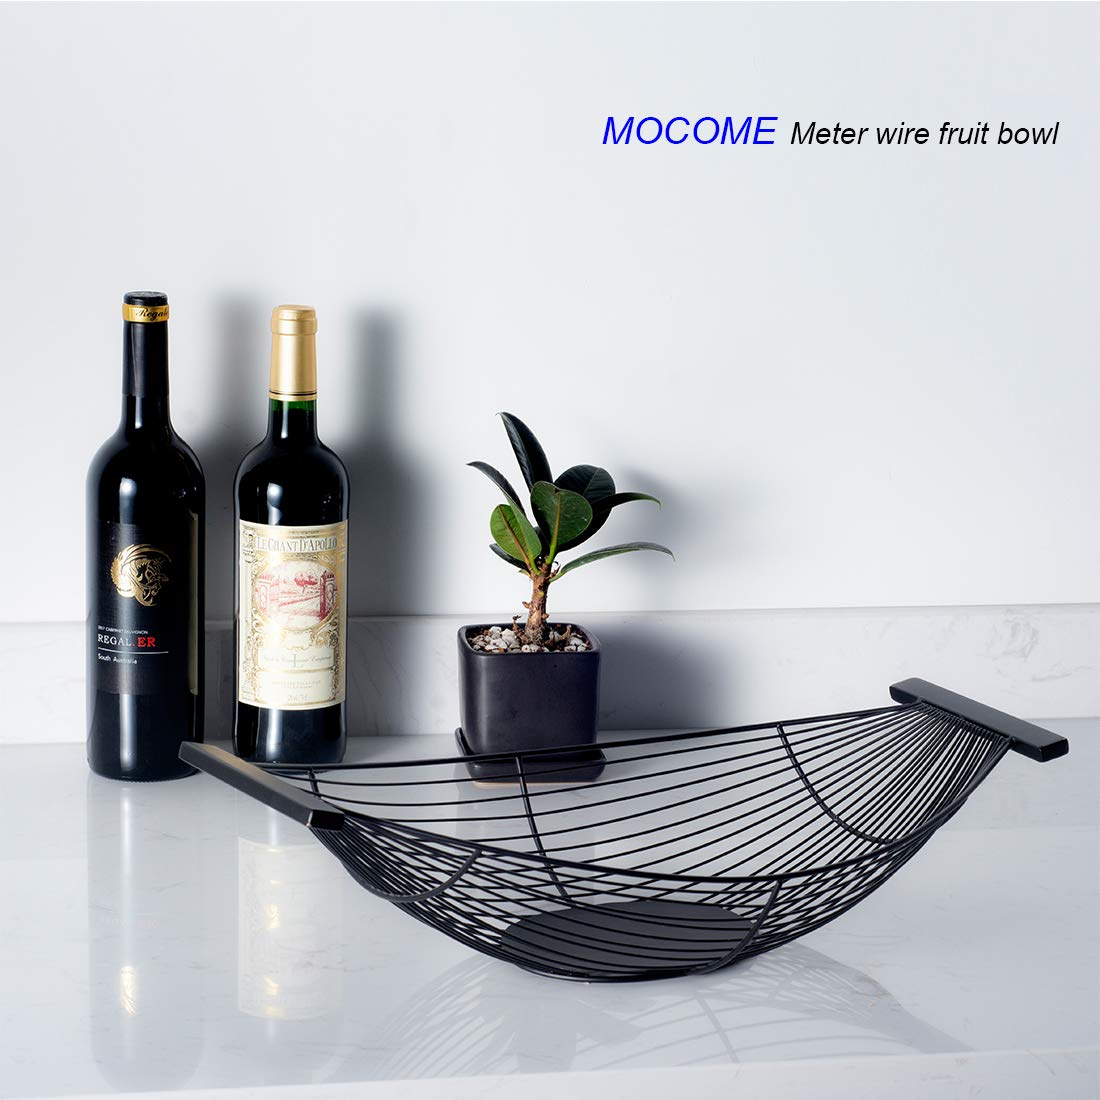 Mocome Decorative Fruit Bowl Long Boat Black Metal Wire Fruit Basket For Kitchen Dining Counter Tabletop Home Decor ,Large Capacity 18.6 Inch